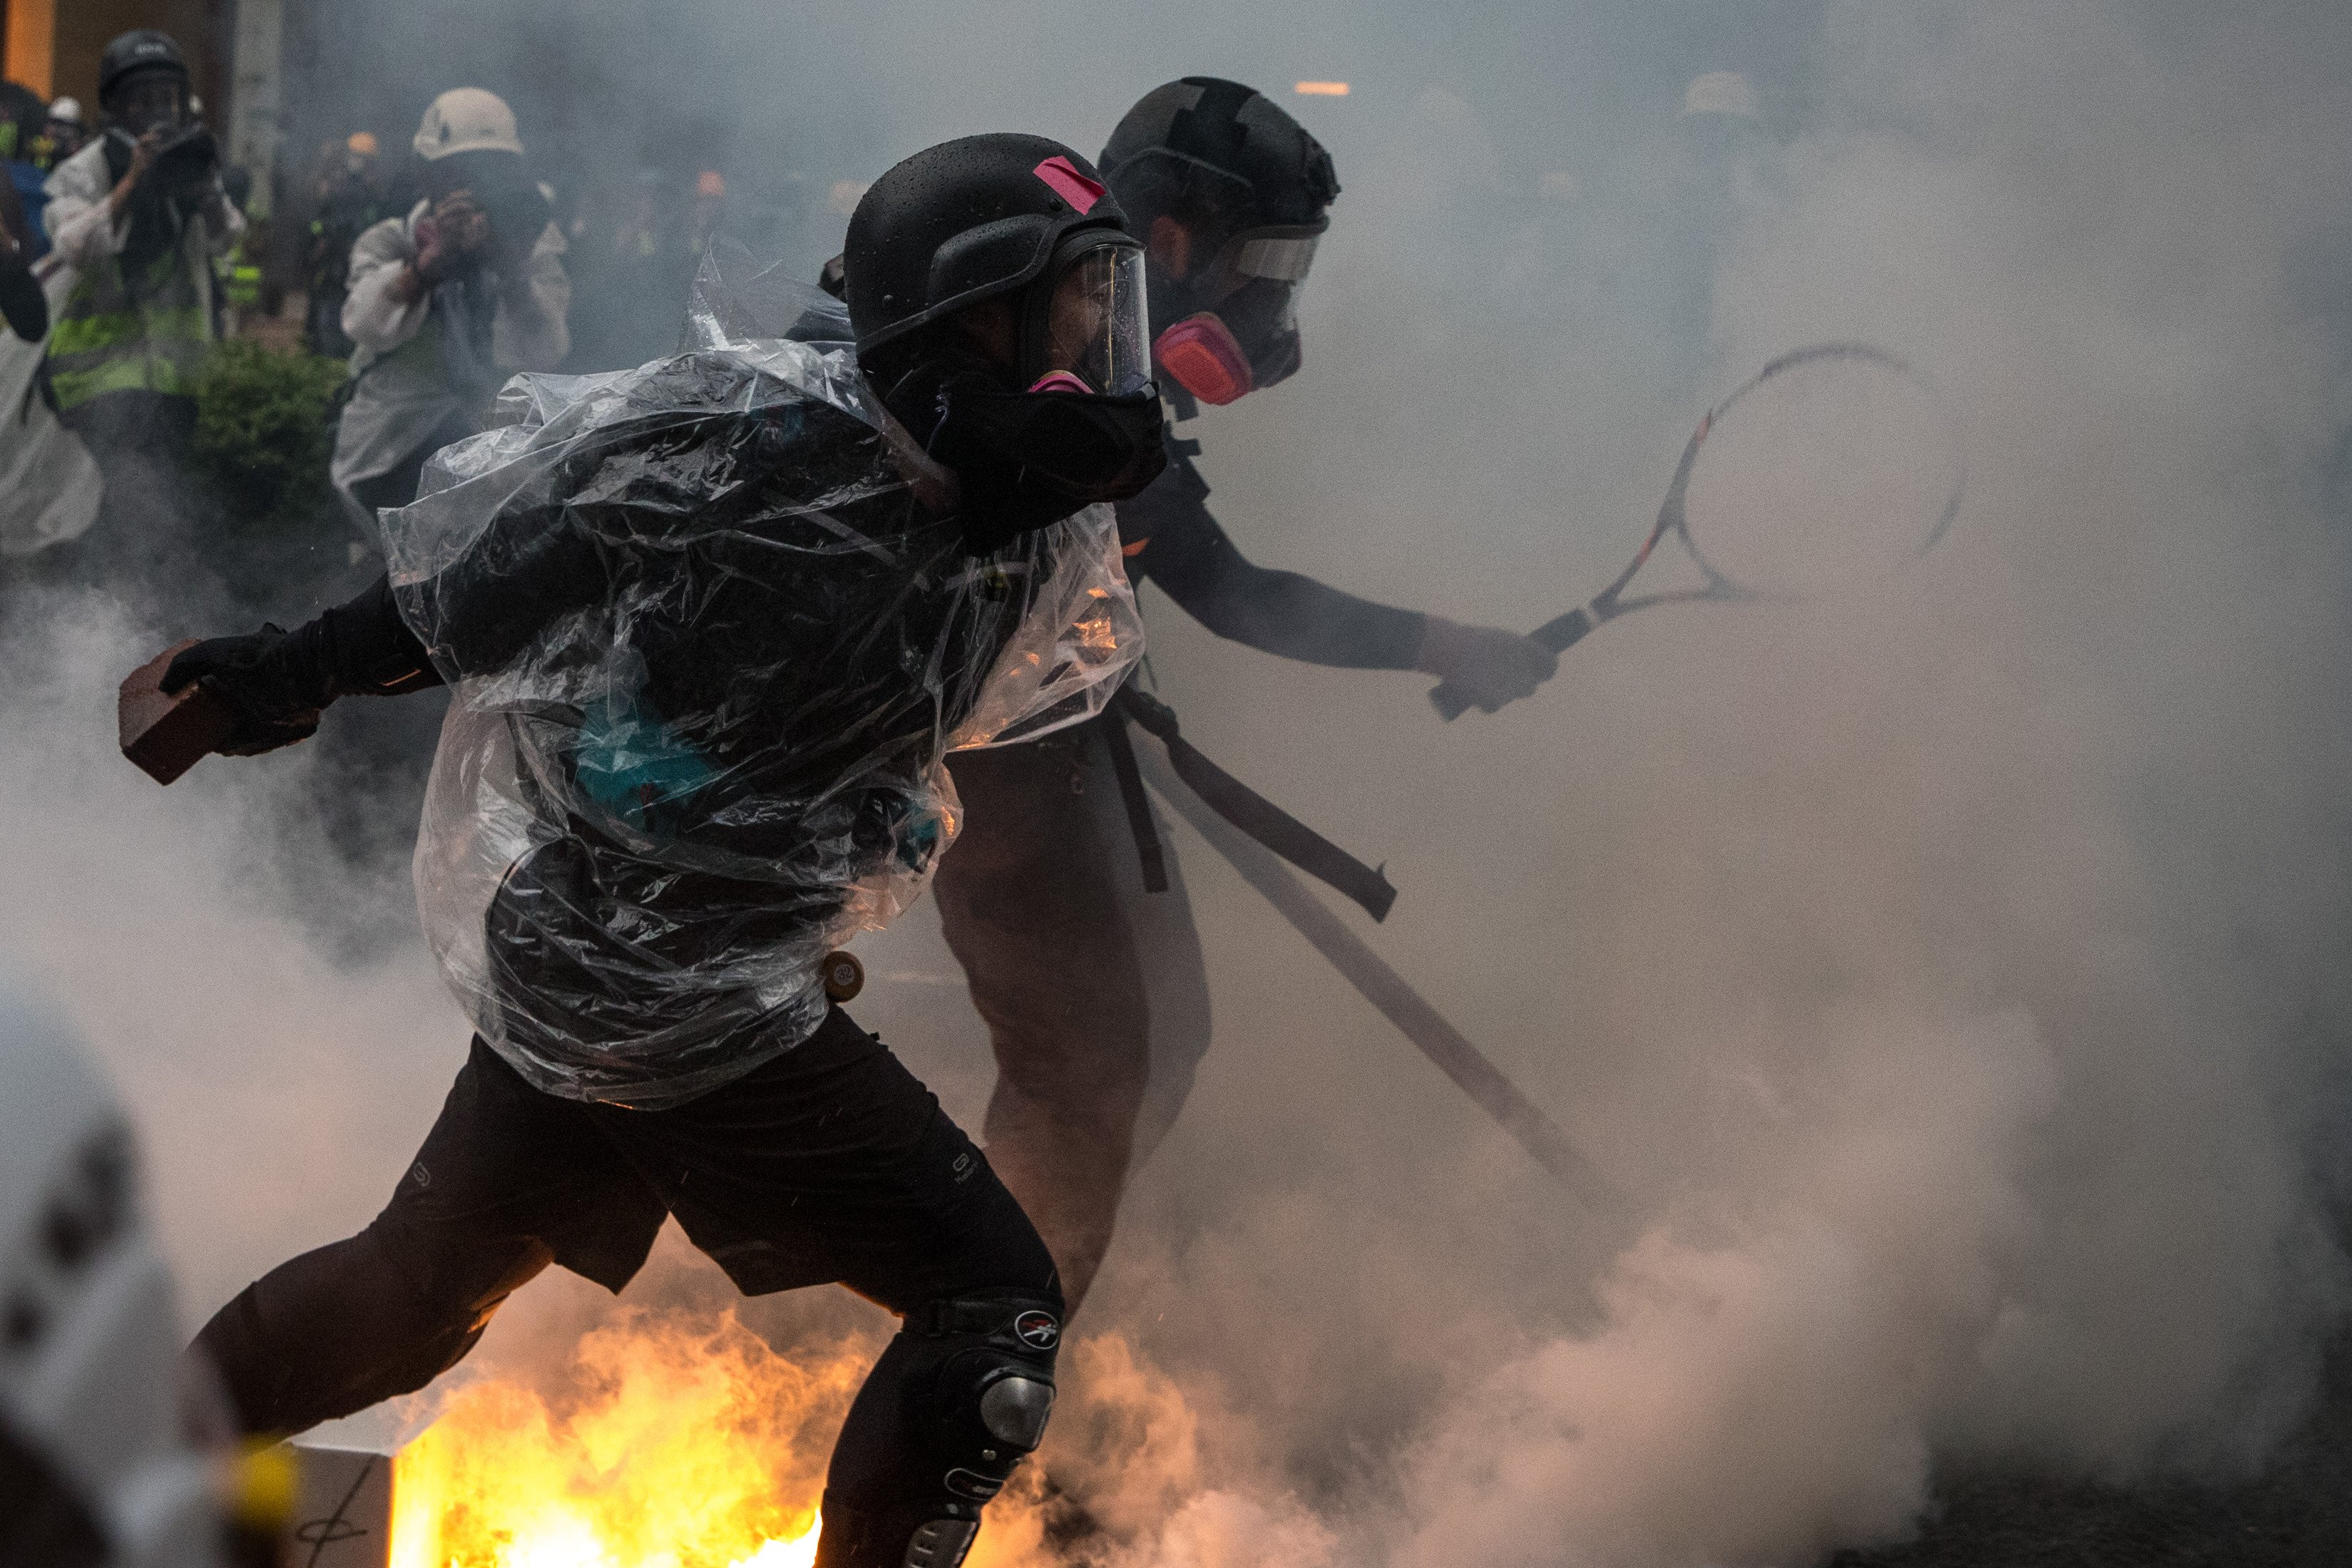 Protesters clash with police after an anti-government rally in Tsuen Wan district on August 25, 2019 in Hong Kong, China. Pro-democracy protesters have continued rallies on the streets of Hong Kong against a controversial extradition bill since 9 June as the city plunged into crisis after waves of demonstrations and several violent clashes. (Photo by Chris McGrath/Getty Images)